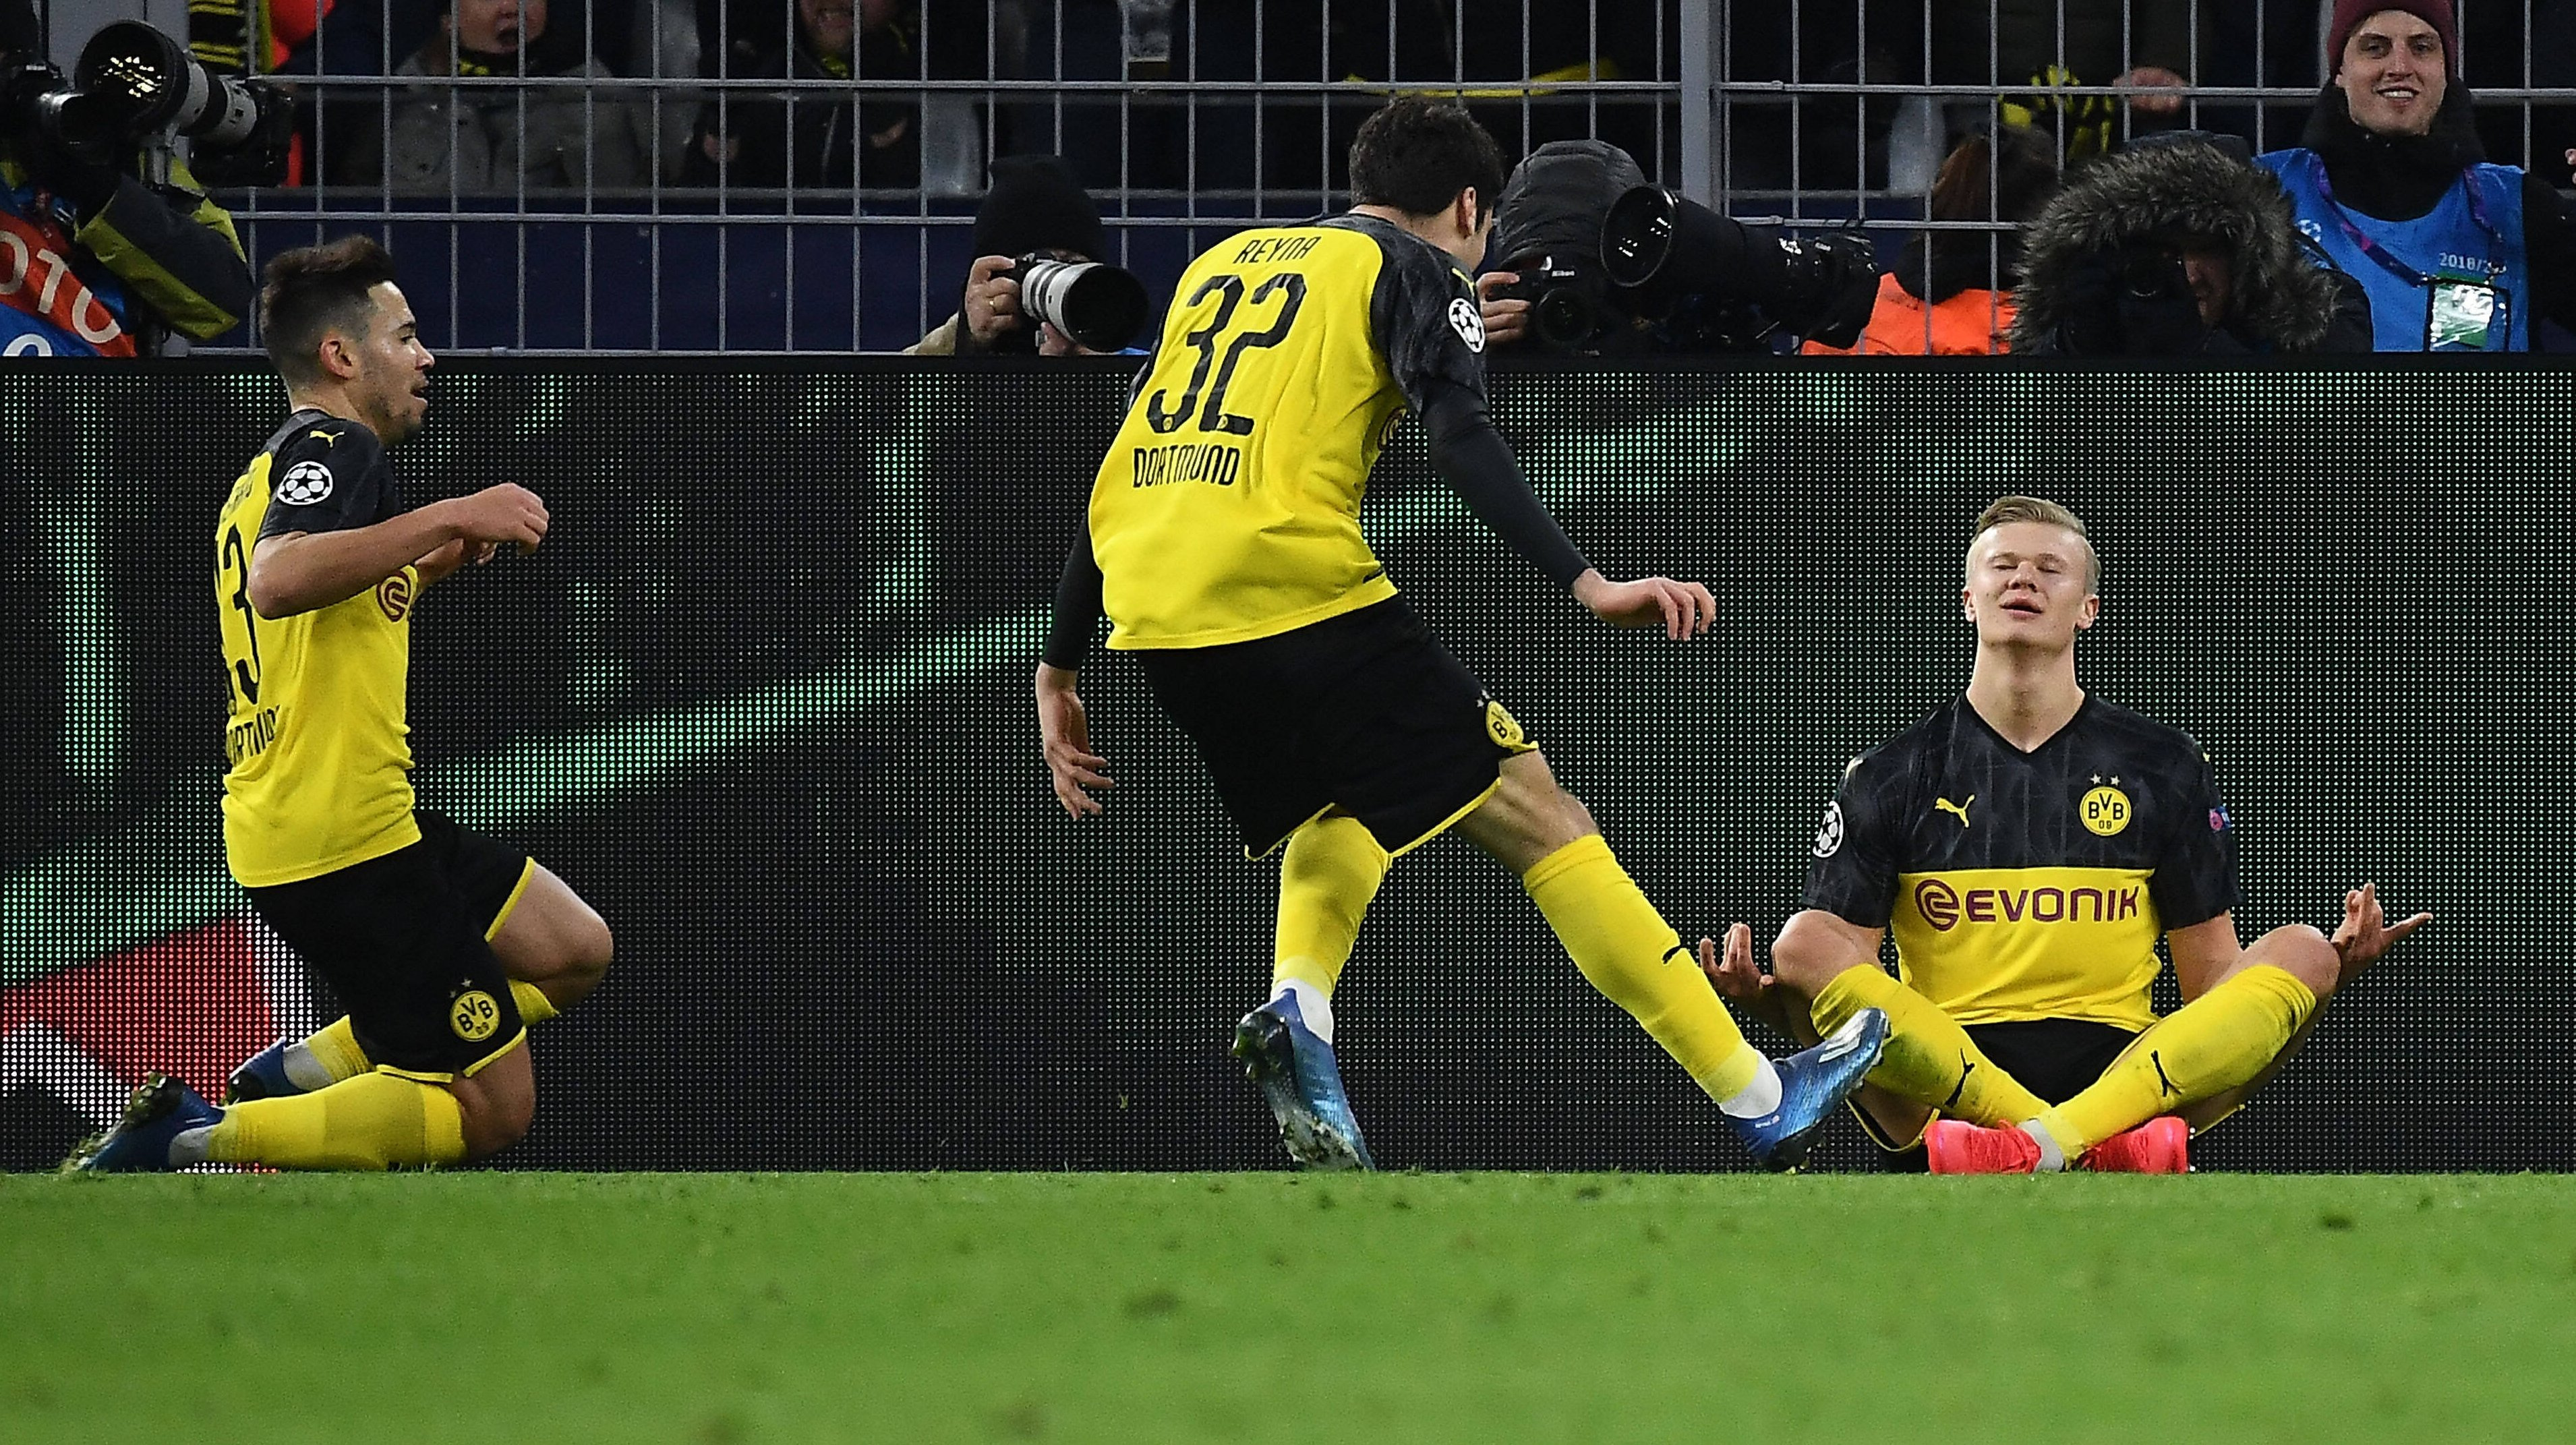 Haaland With A New Record Reyna Youngest Bvb Player Dortmund Beat Psg 2 1 Transfermarkt